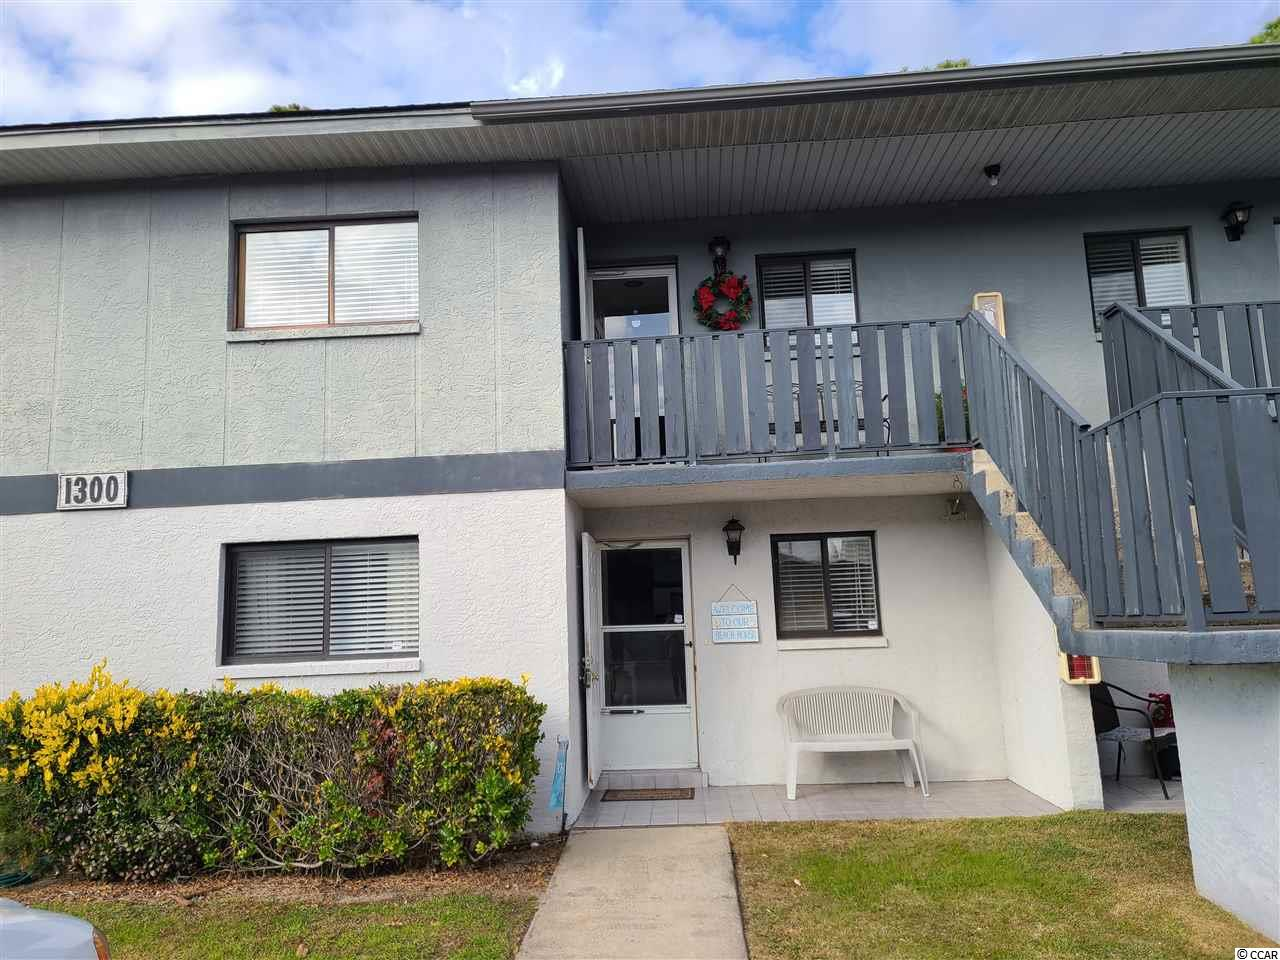 Pack your suitcase and move right into this fully furnished and stocked 2 bedroom 2 bath condo in the quiet Tradewinds I neighborhood of Surfside Beach. Maintenance free living with low HOA dues that cover water/sewer, trash, recycling, cable tv, internet, all landscaping, exterior building insurance, pest control, and onsite pool.  This spotless unit is on the first floor and has been painted top to bottom, new HVAC unit in 2019, new hot water heater in June 2020, new laminate wood floors in great room, new light fixtures and ceiling fans throughout, new blinds on all windows, new screen on the porch, new lever handles throughout, new shower heads, new smoke detectors, and new cabinet hardware in kitchen and baths. All three beds and living room furniture were bought new in 2018 and have only been used a few times since this has been a second home.  All beach decor conveys as well so there is nothing left to do but enjoy the beach just a mile away, eat at a different fabulous restaurant every night, and have all the conveniences nearby such as grocery stores, banks, doctors, and entertainment. There is a stackable washer/dryer in the hall on the guest side of the condo as well as a linen closet. The master en suite includes a walk in closet, private full bath with spacious shower and is in the back of the condo overlooking a wooded area. The great room wall is floor to ceiling mirrors which adds a more spacious and bright atmosphere. Call today for a showing!